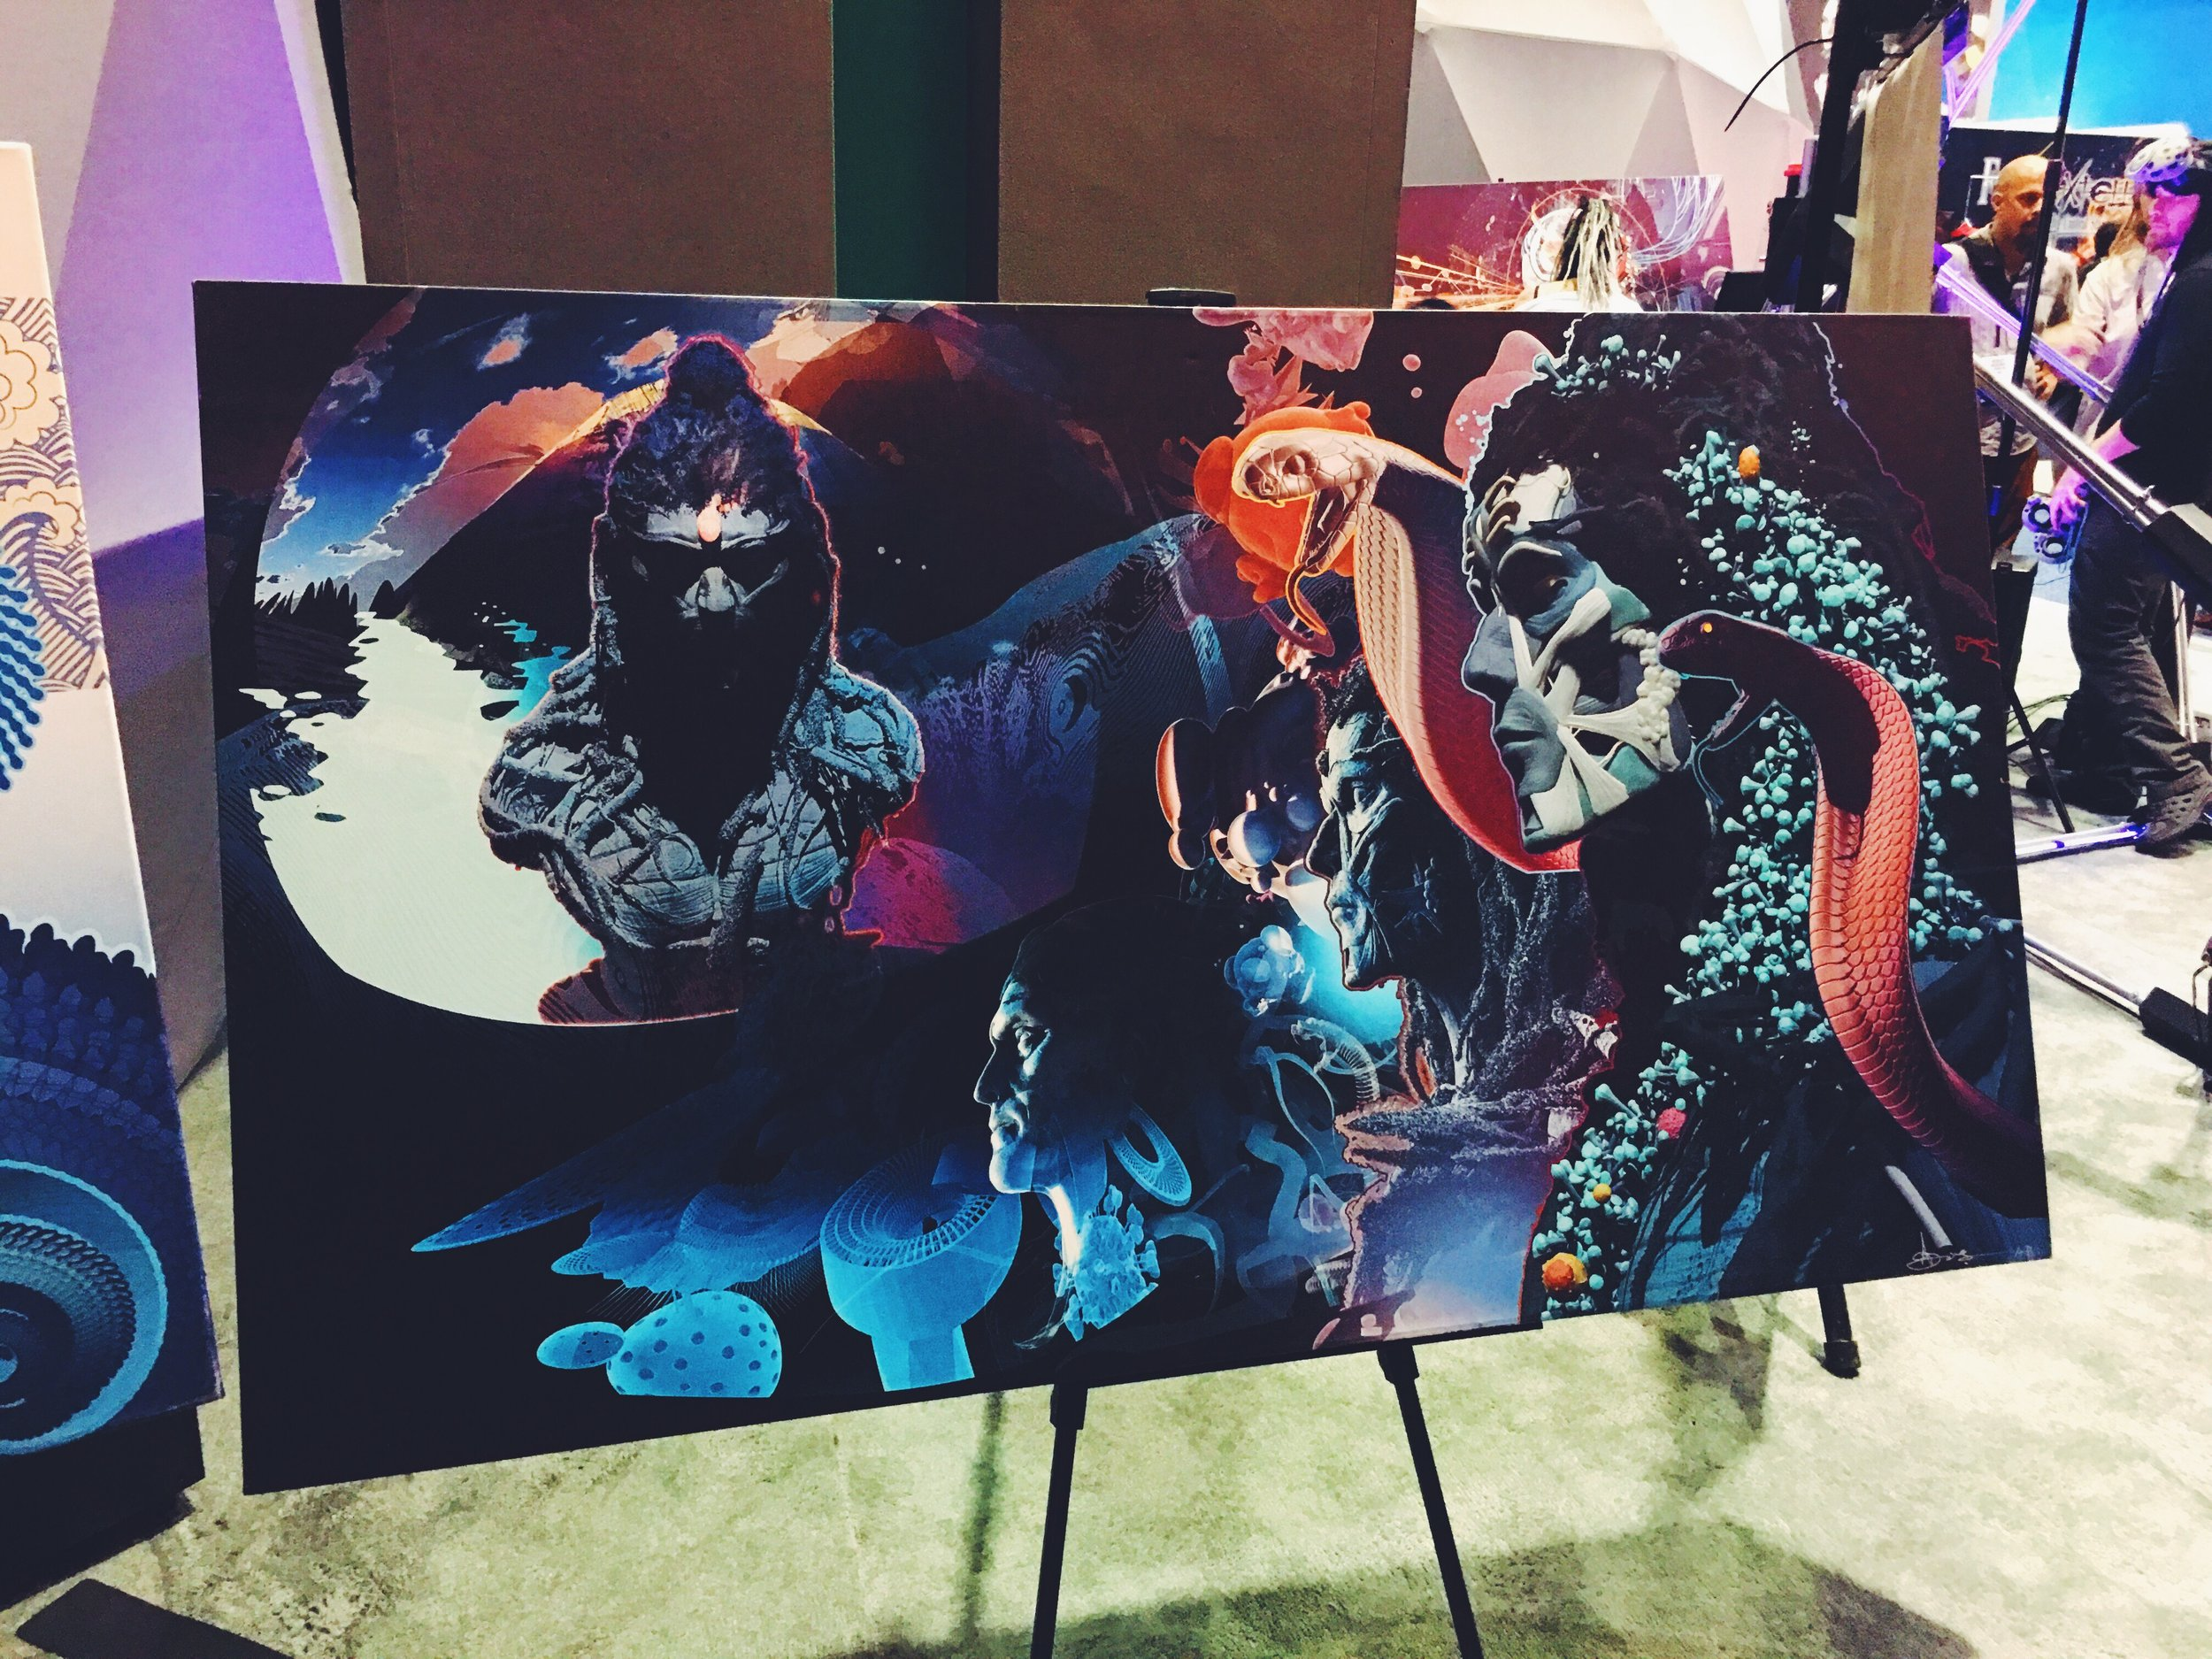 Some breathtaking art on the E3 floor!